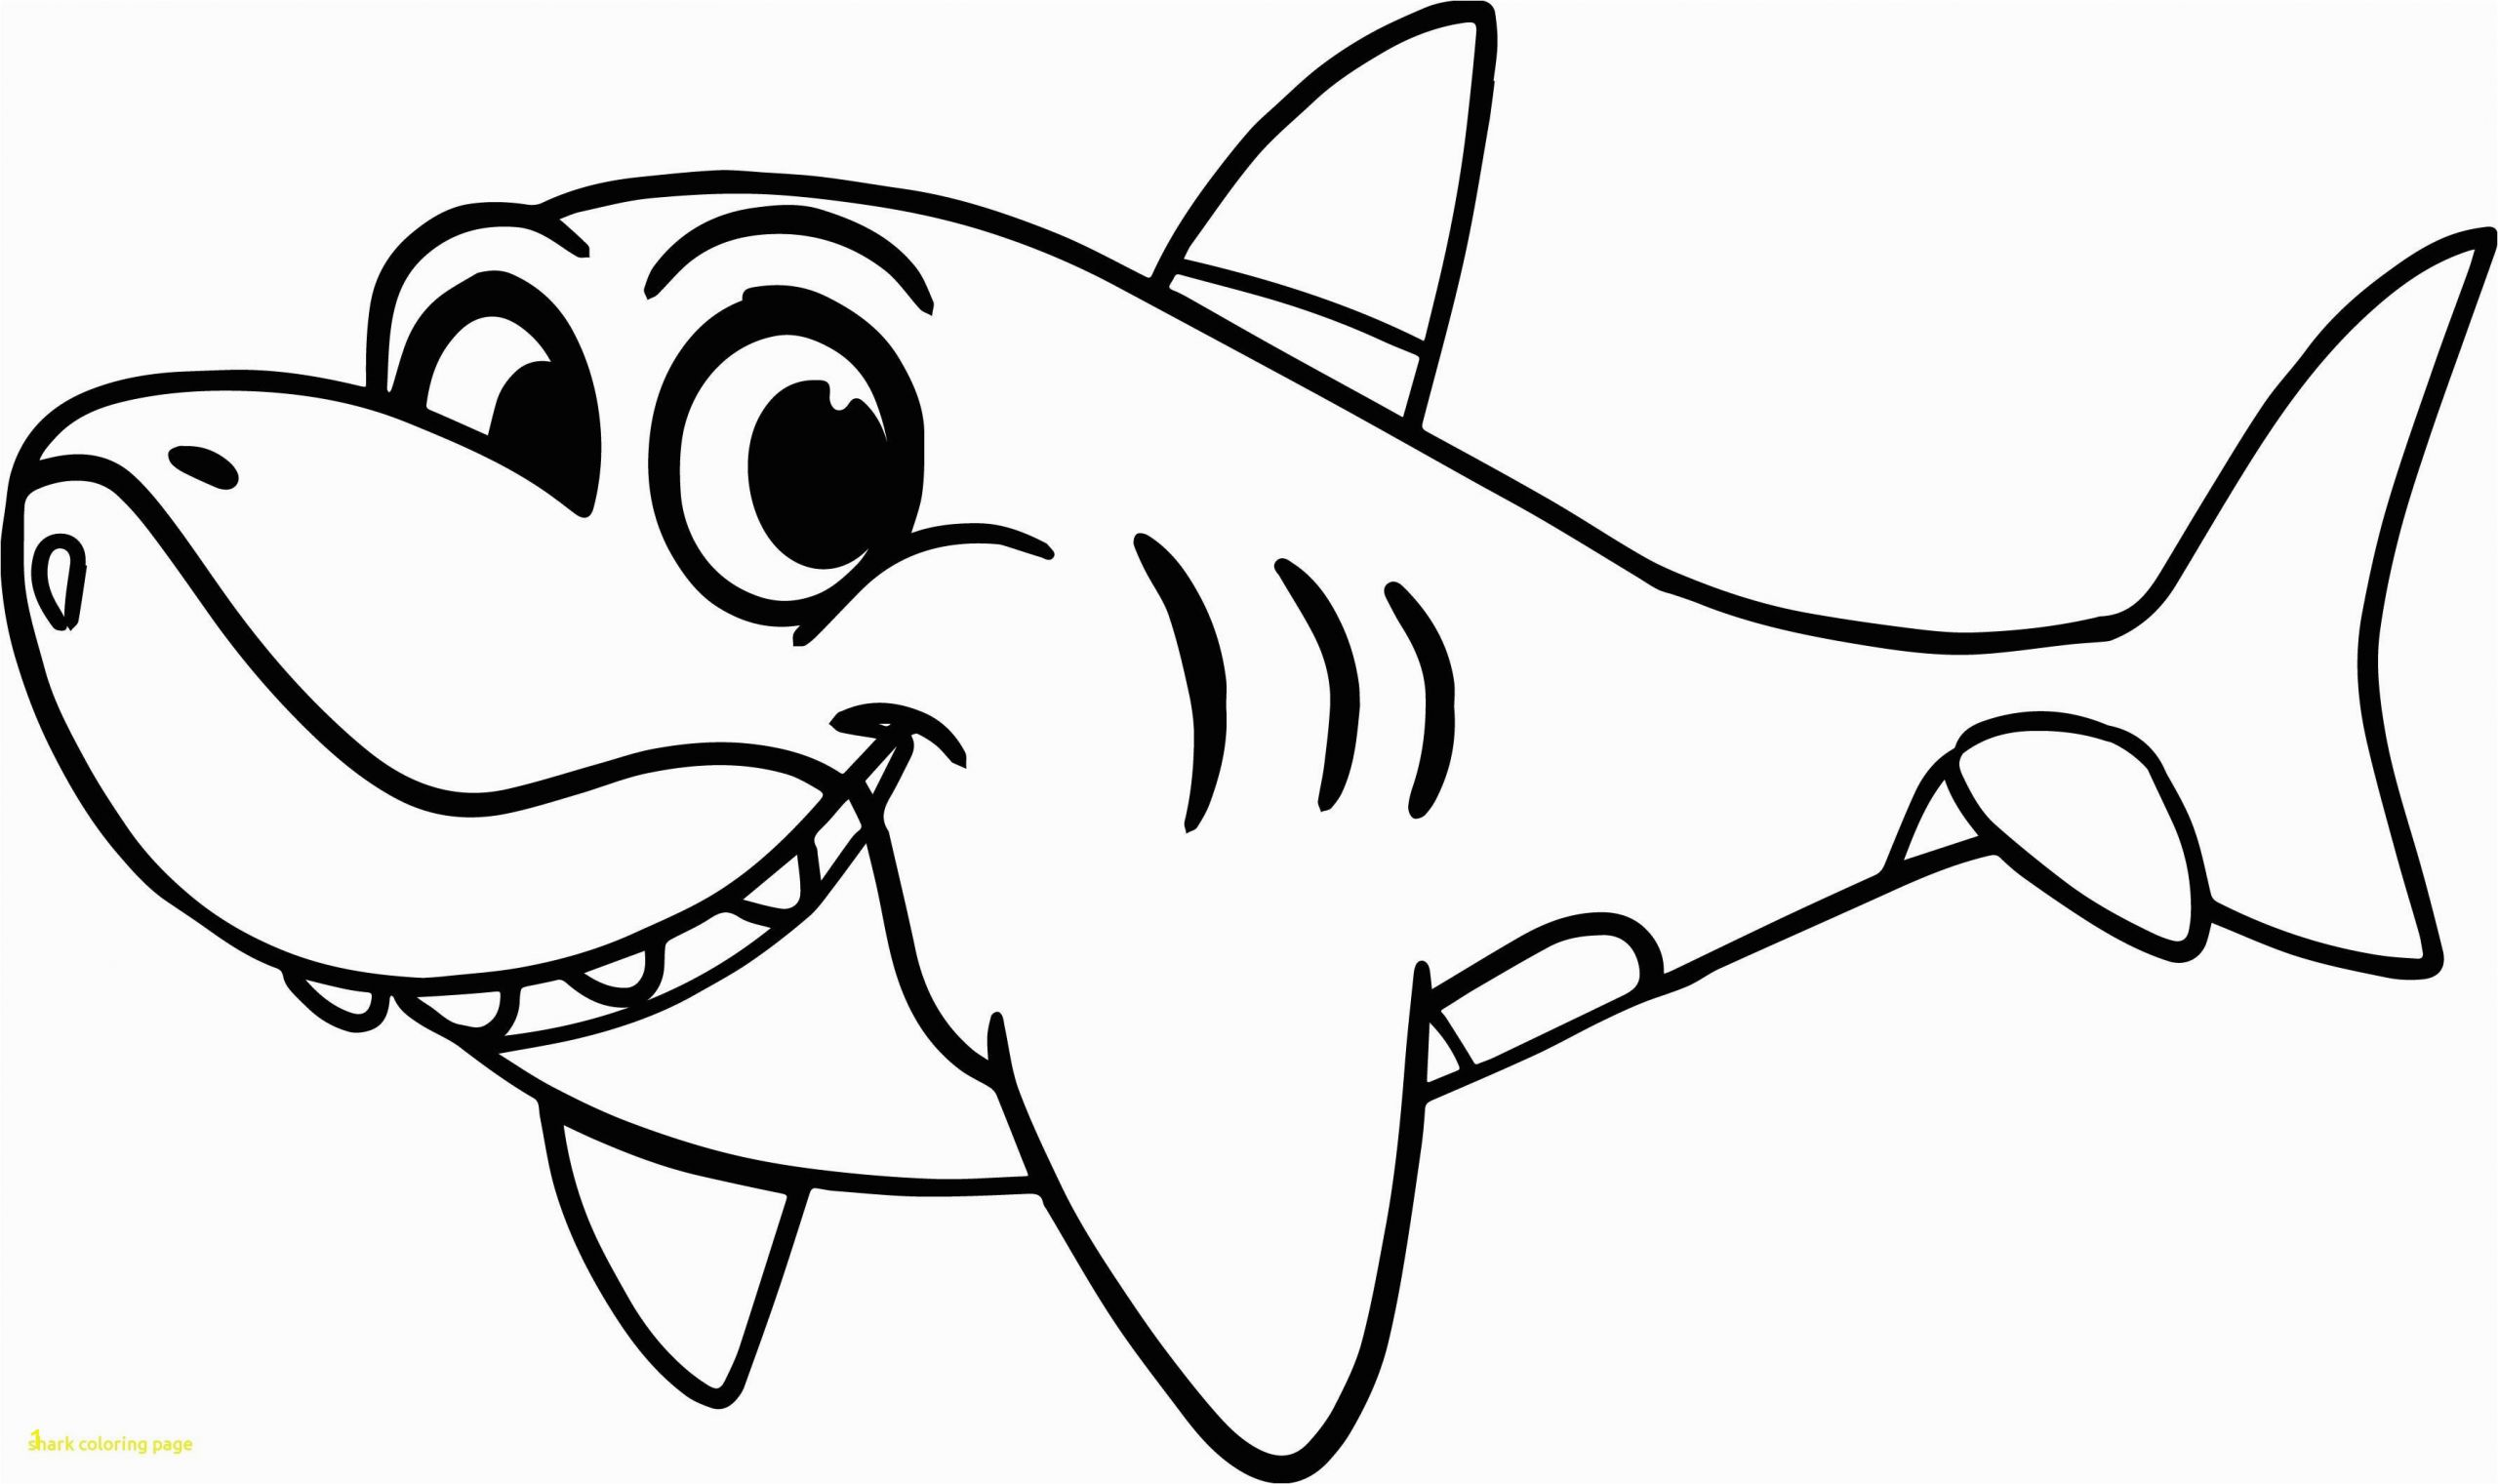 shark coloring printable property free preschool motivate to cure for kids and along with pictures of animals preschoolers in pets cute animal awesome images adorable